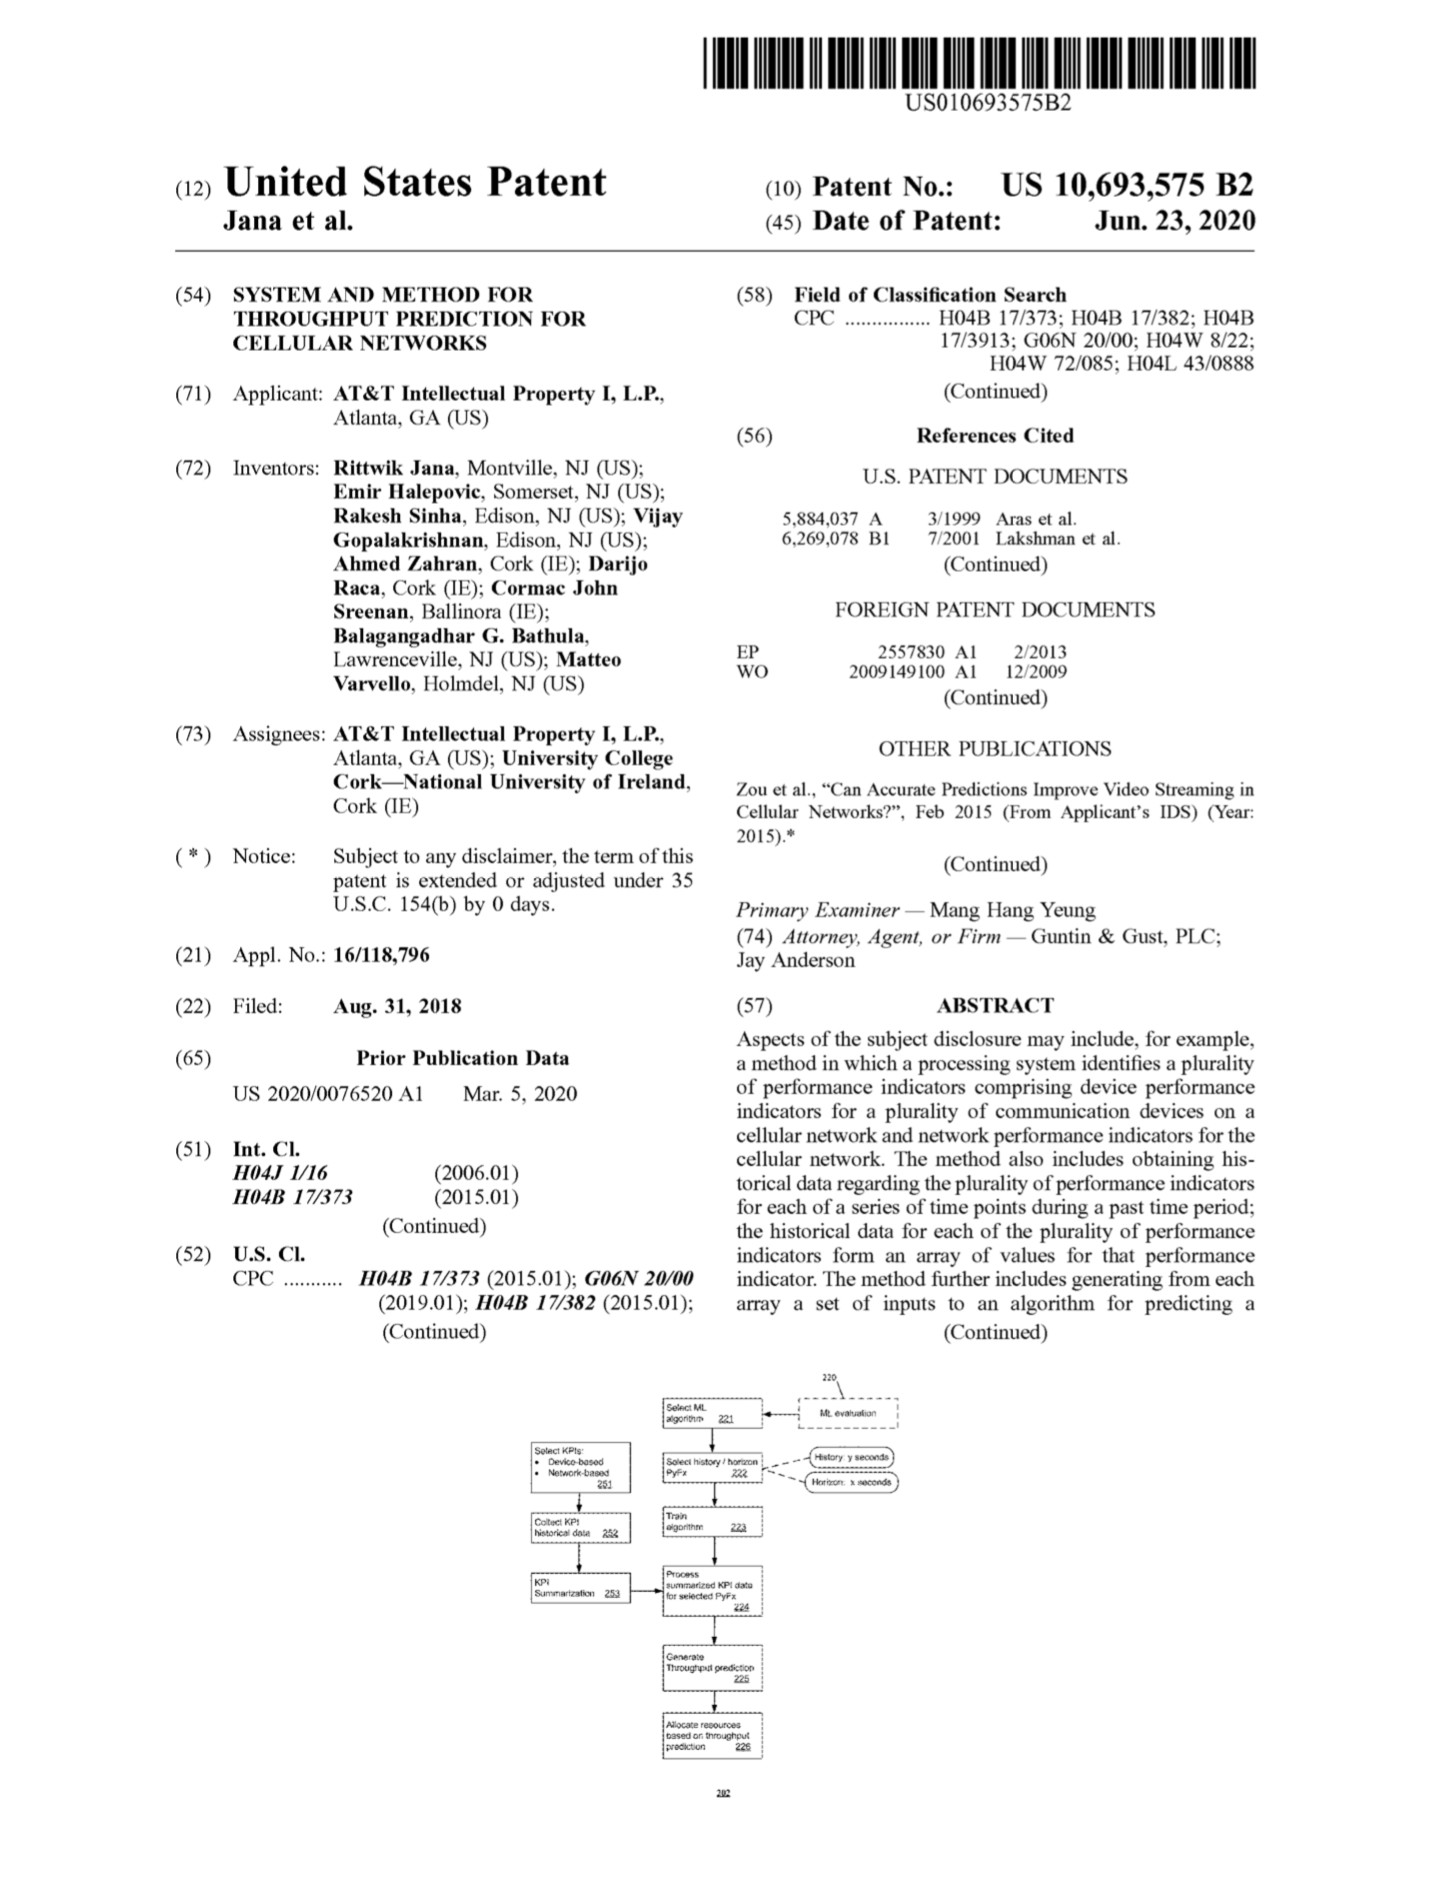 US Patent - System & Method for Throughput Prediction for Cellular Networks